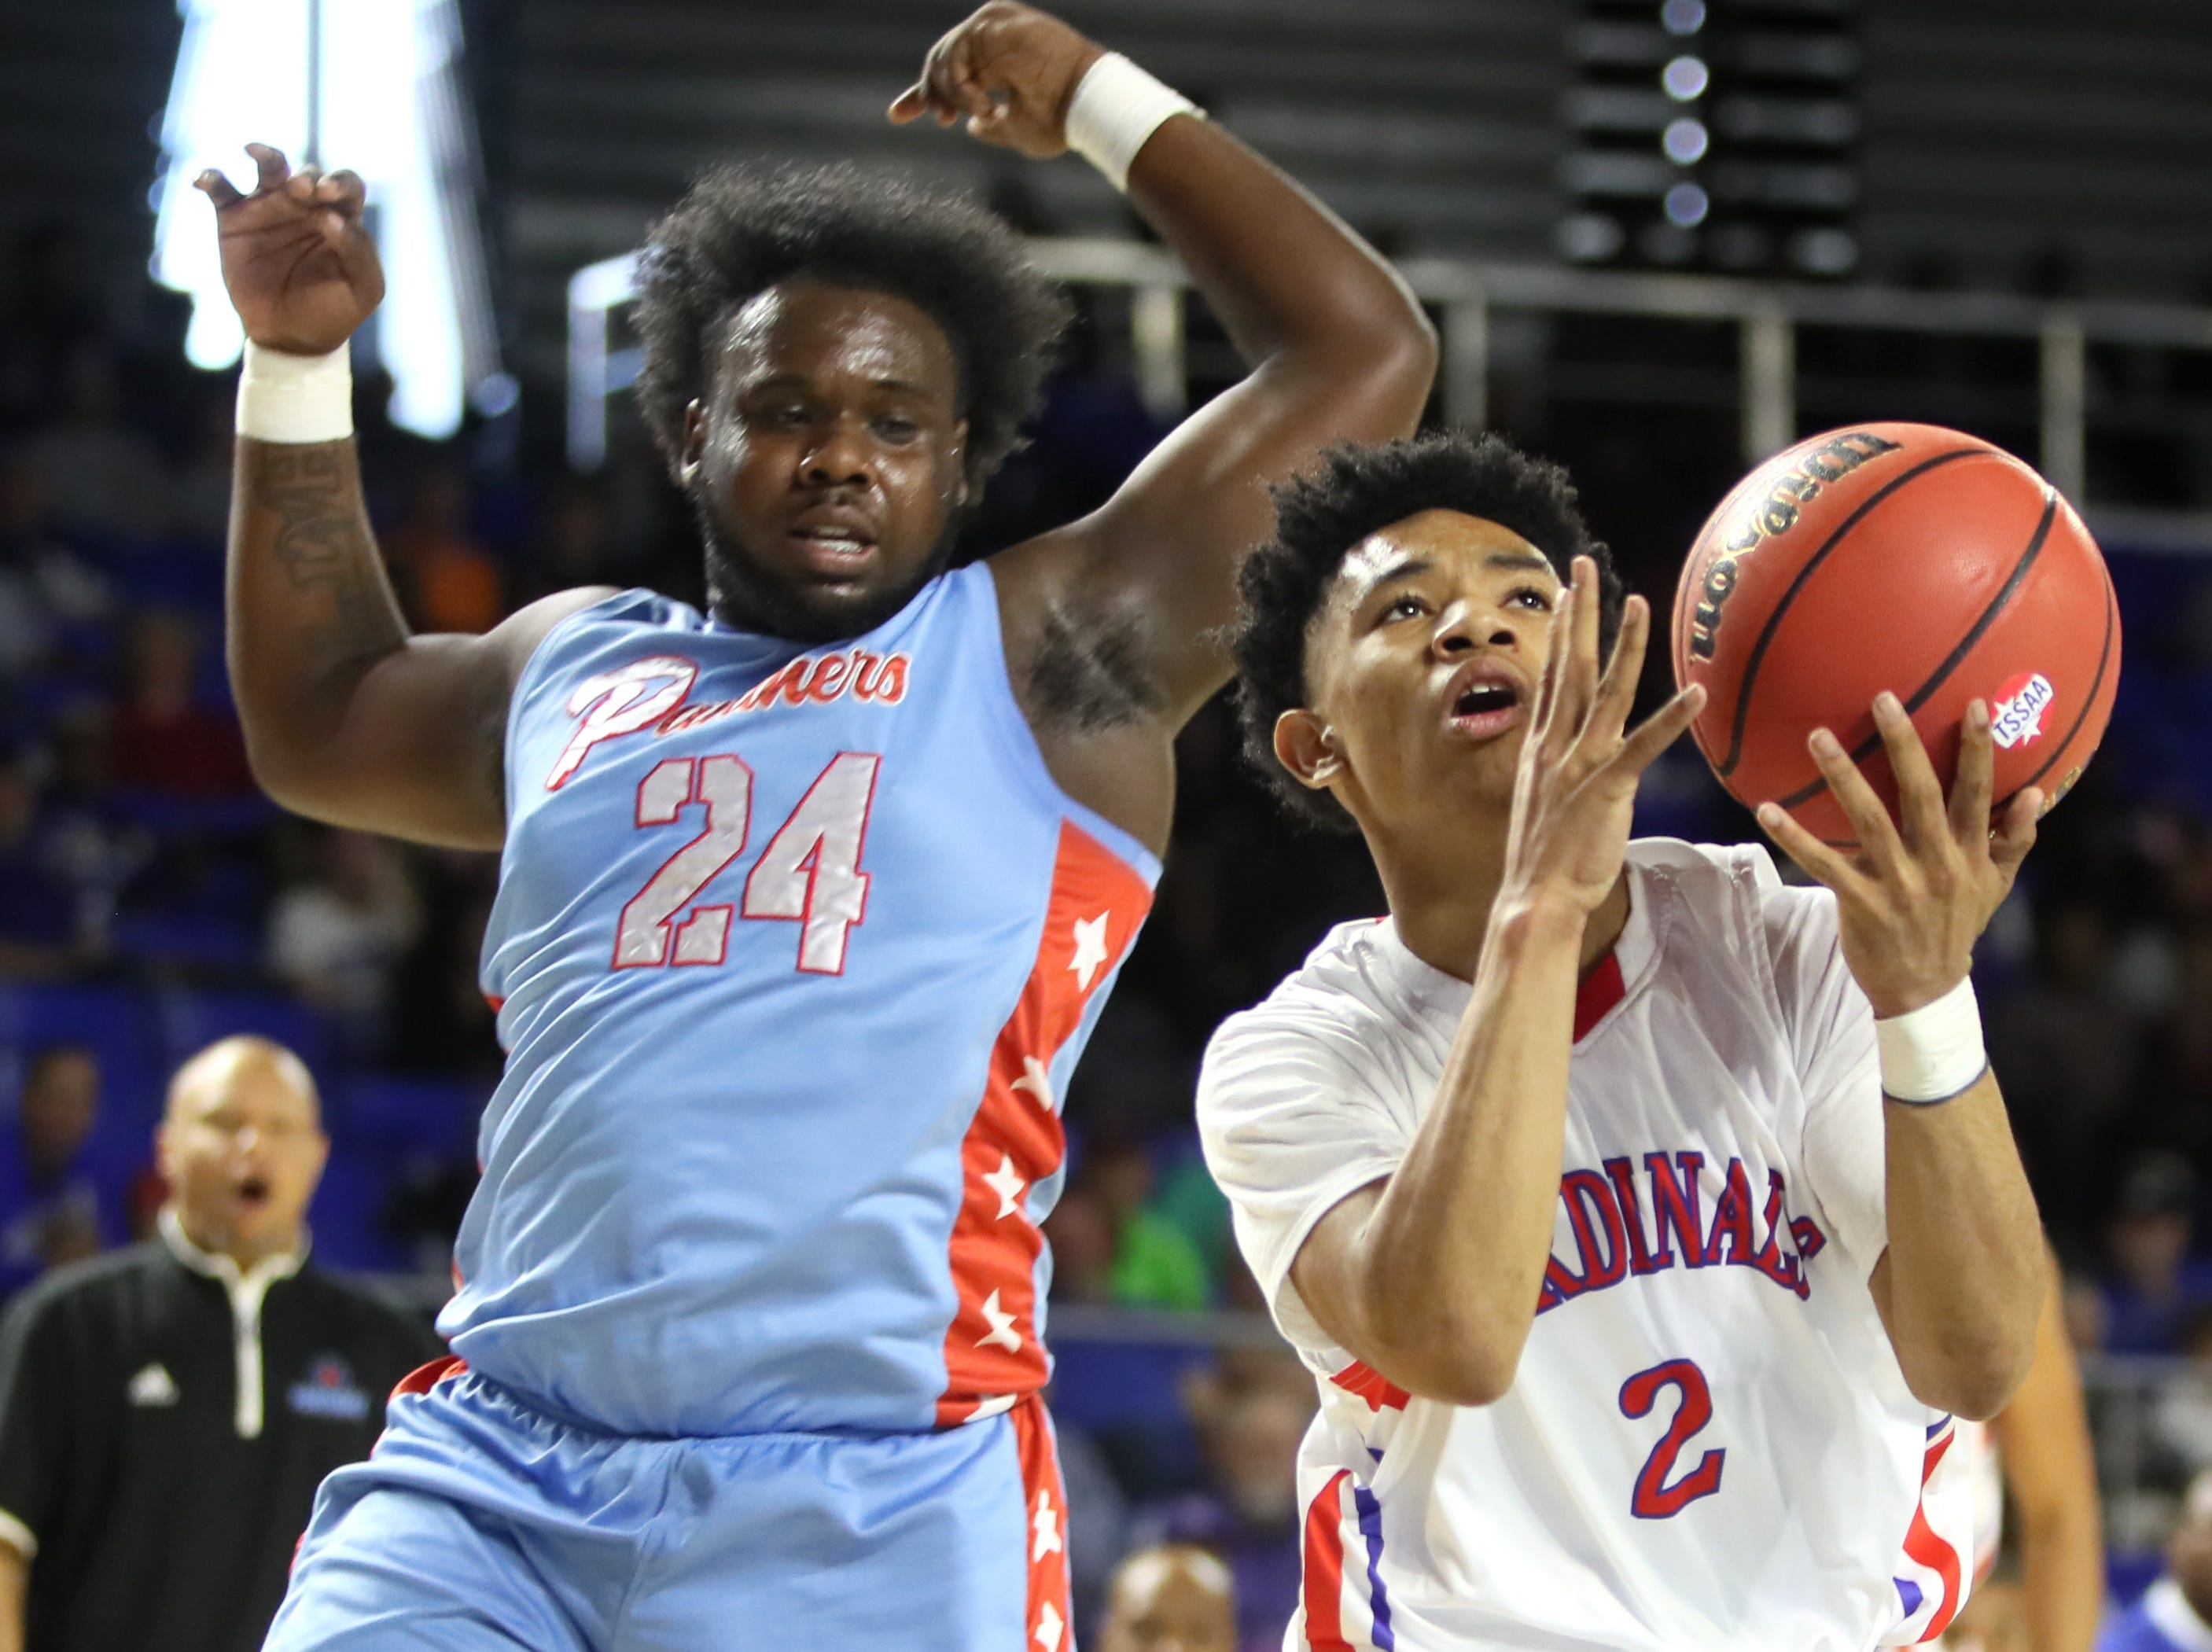 Wooddale's Kevin Brown drives past Brainerd's Ciante Chaney during the Class AA boys basketball state semifinal at the Murphy Center in Murfreesboro, Tenn. on Thursday, March 14, 2019.